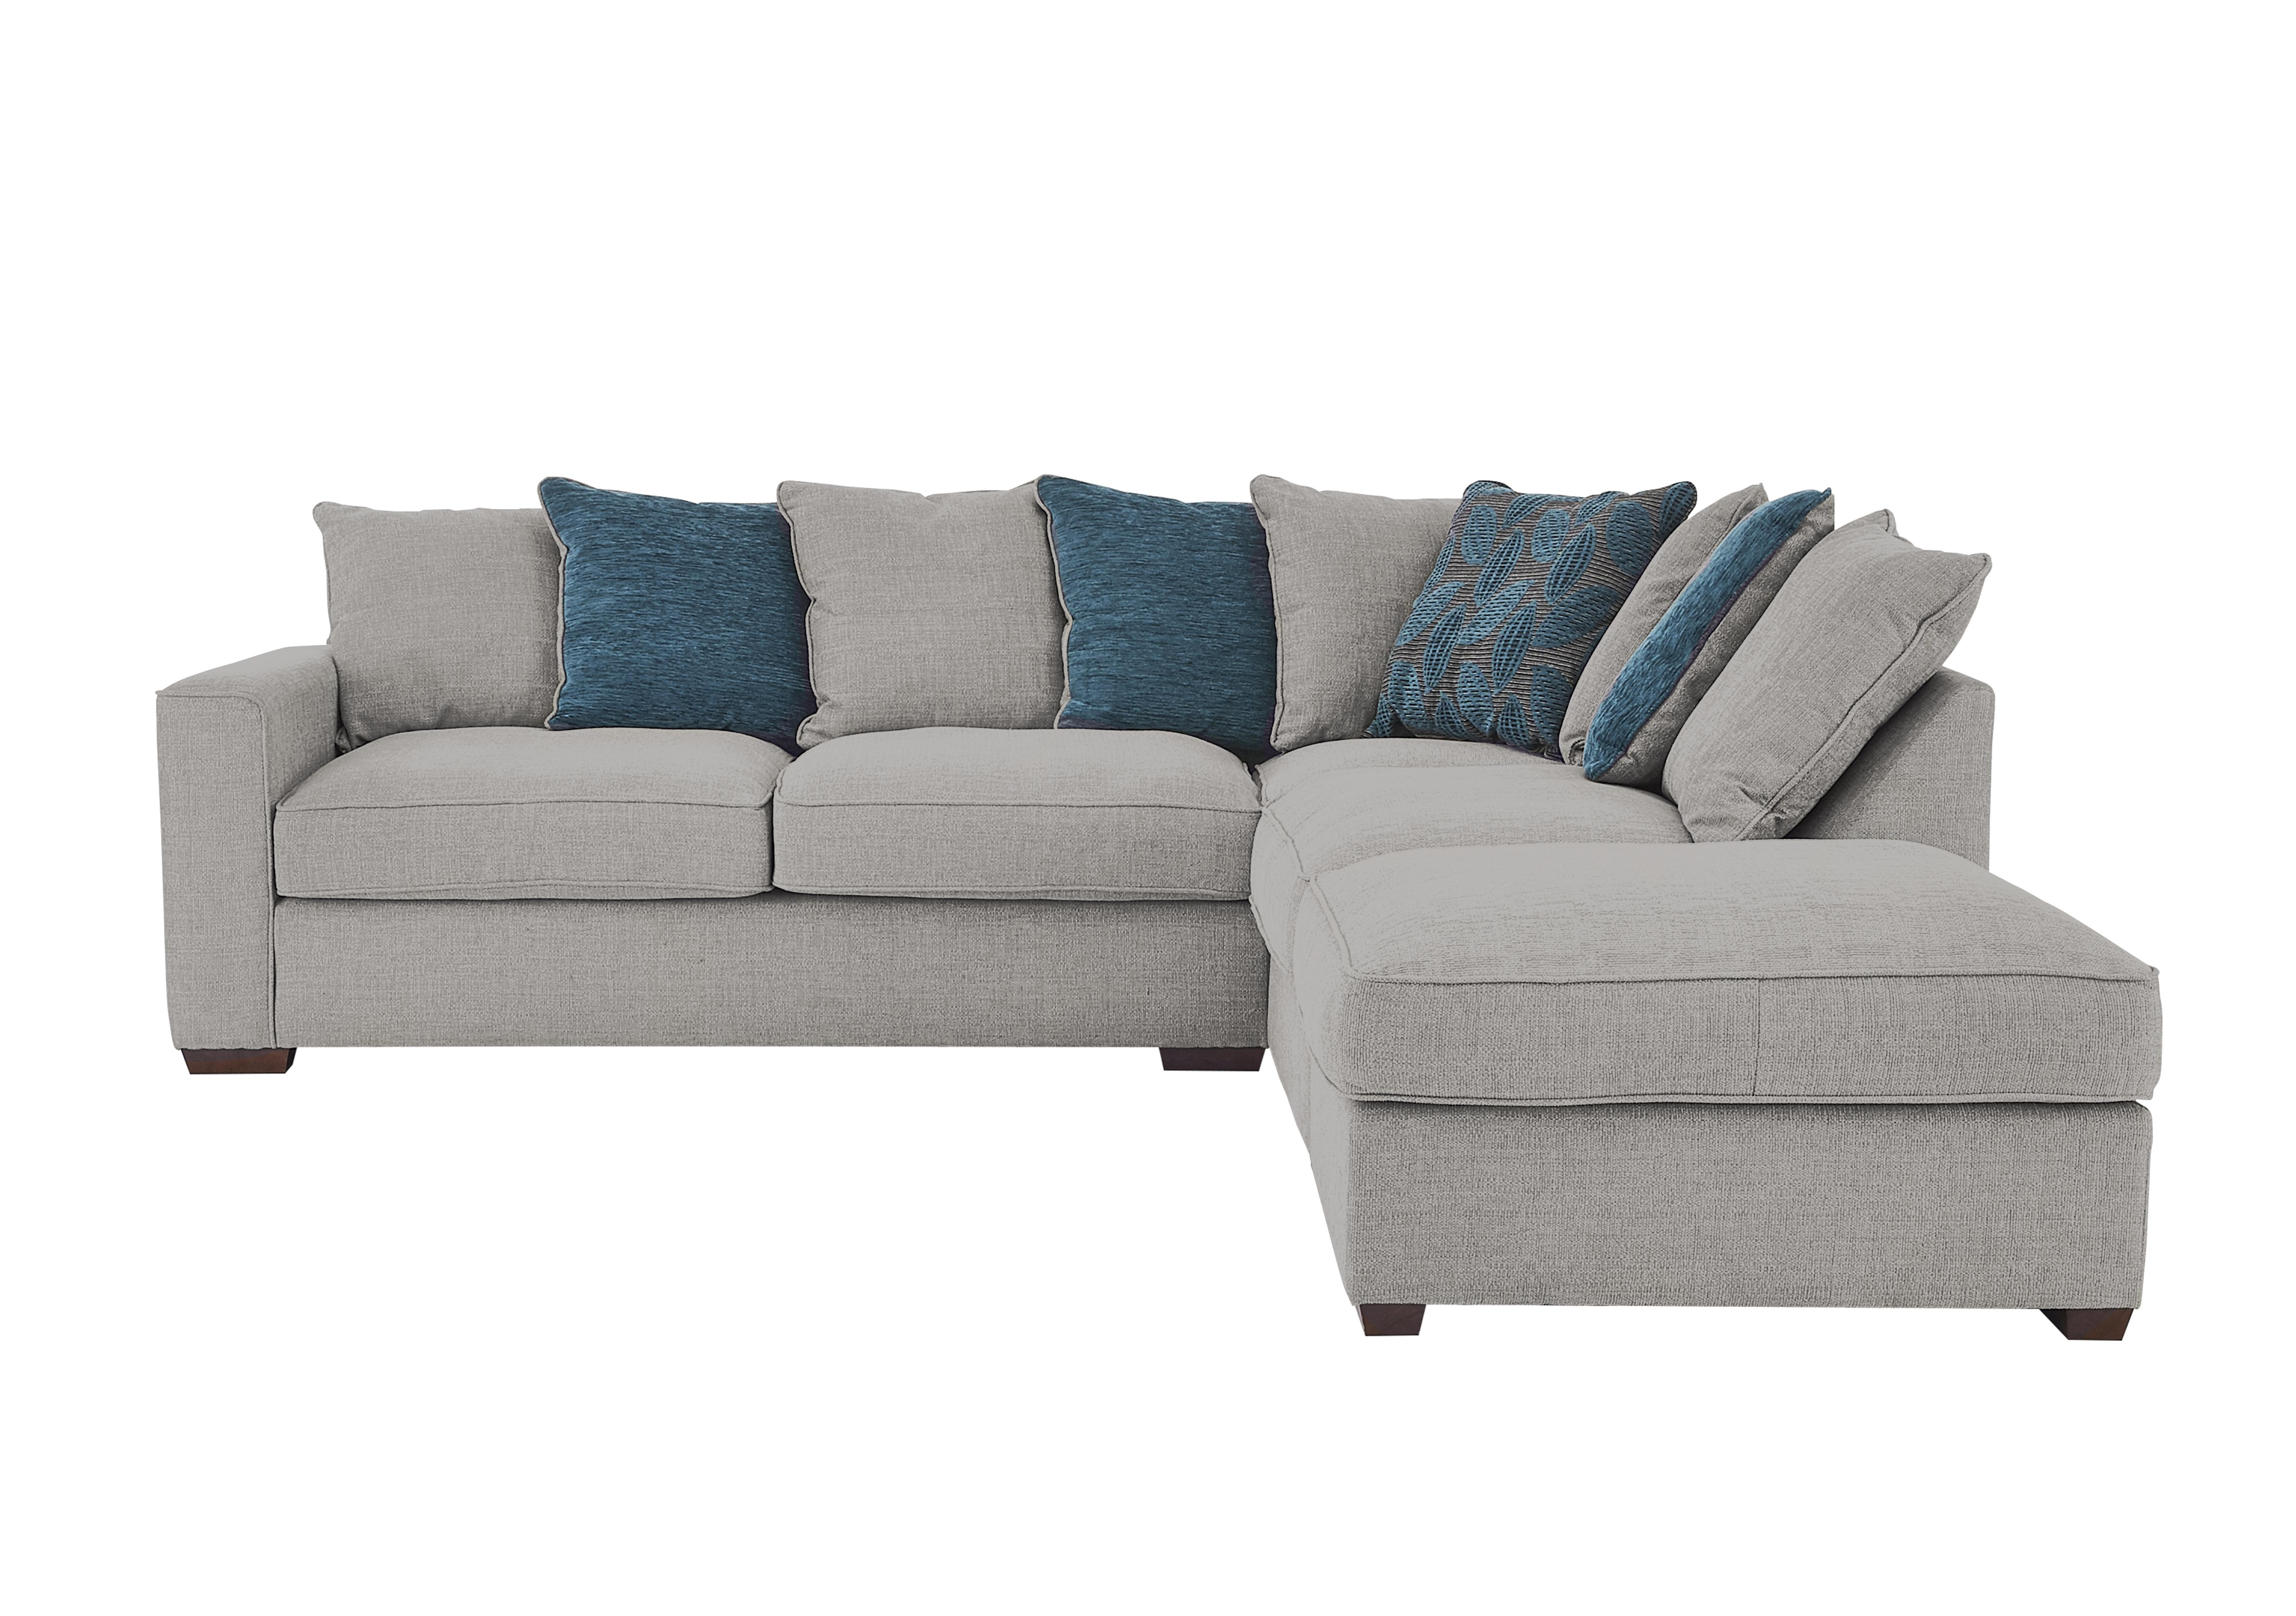 Seasons Pillow Back Fabric Corner Sofa - Furniture Village